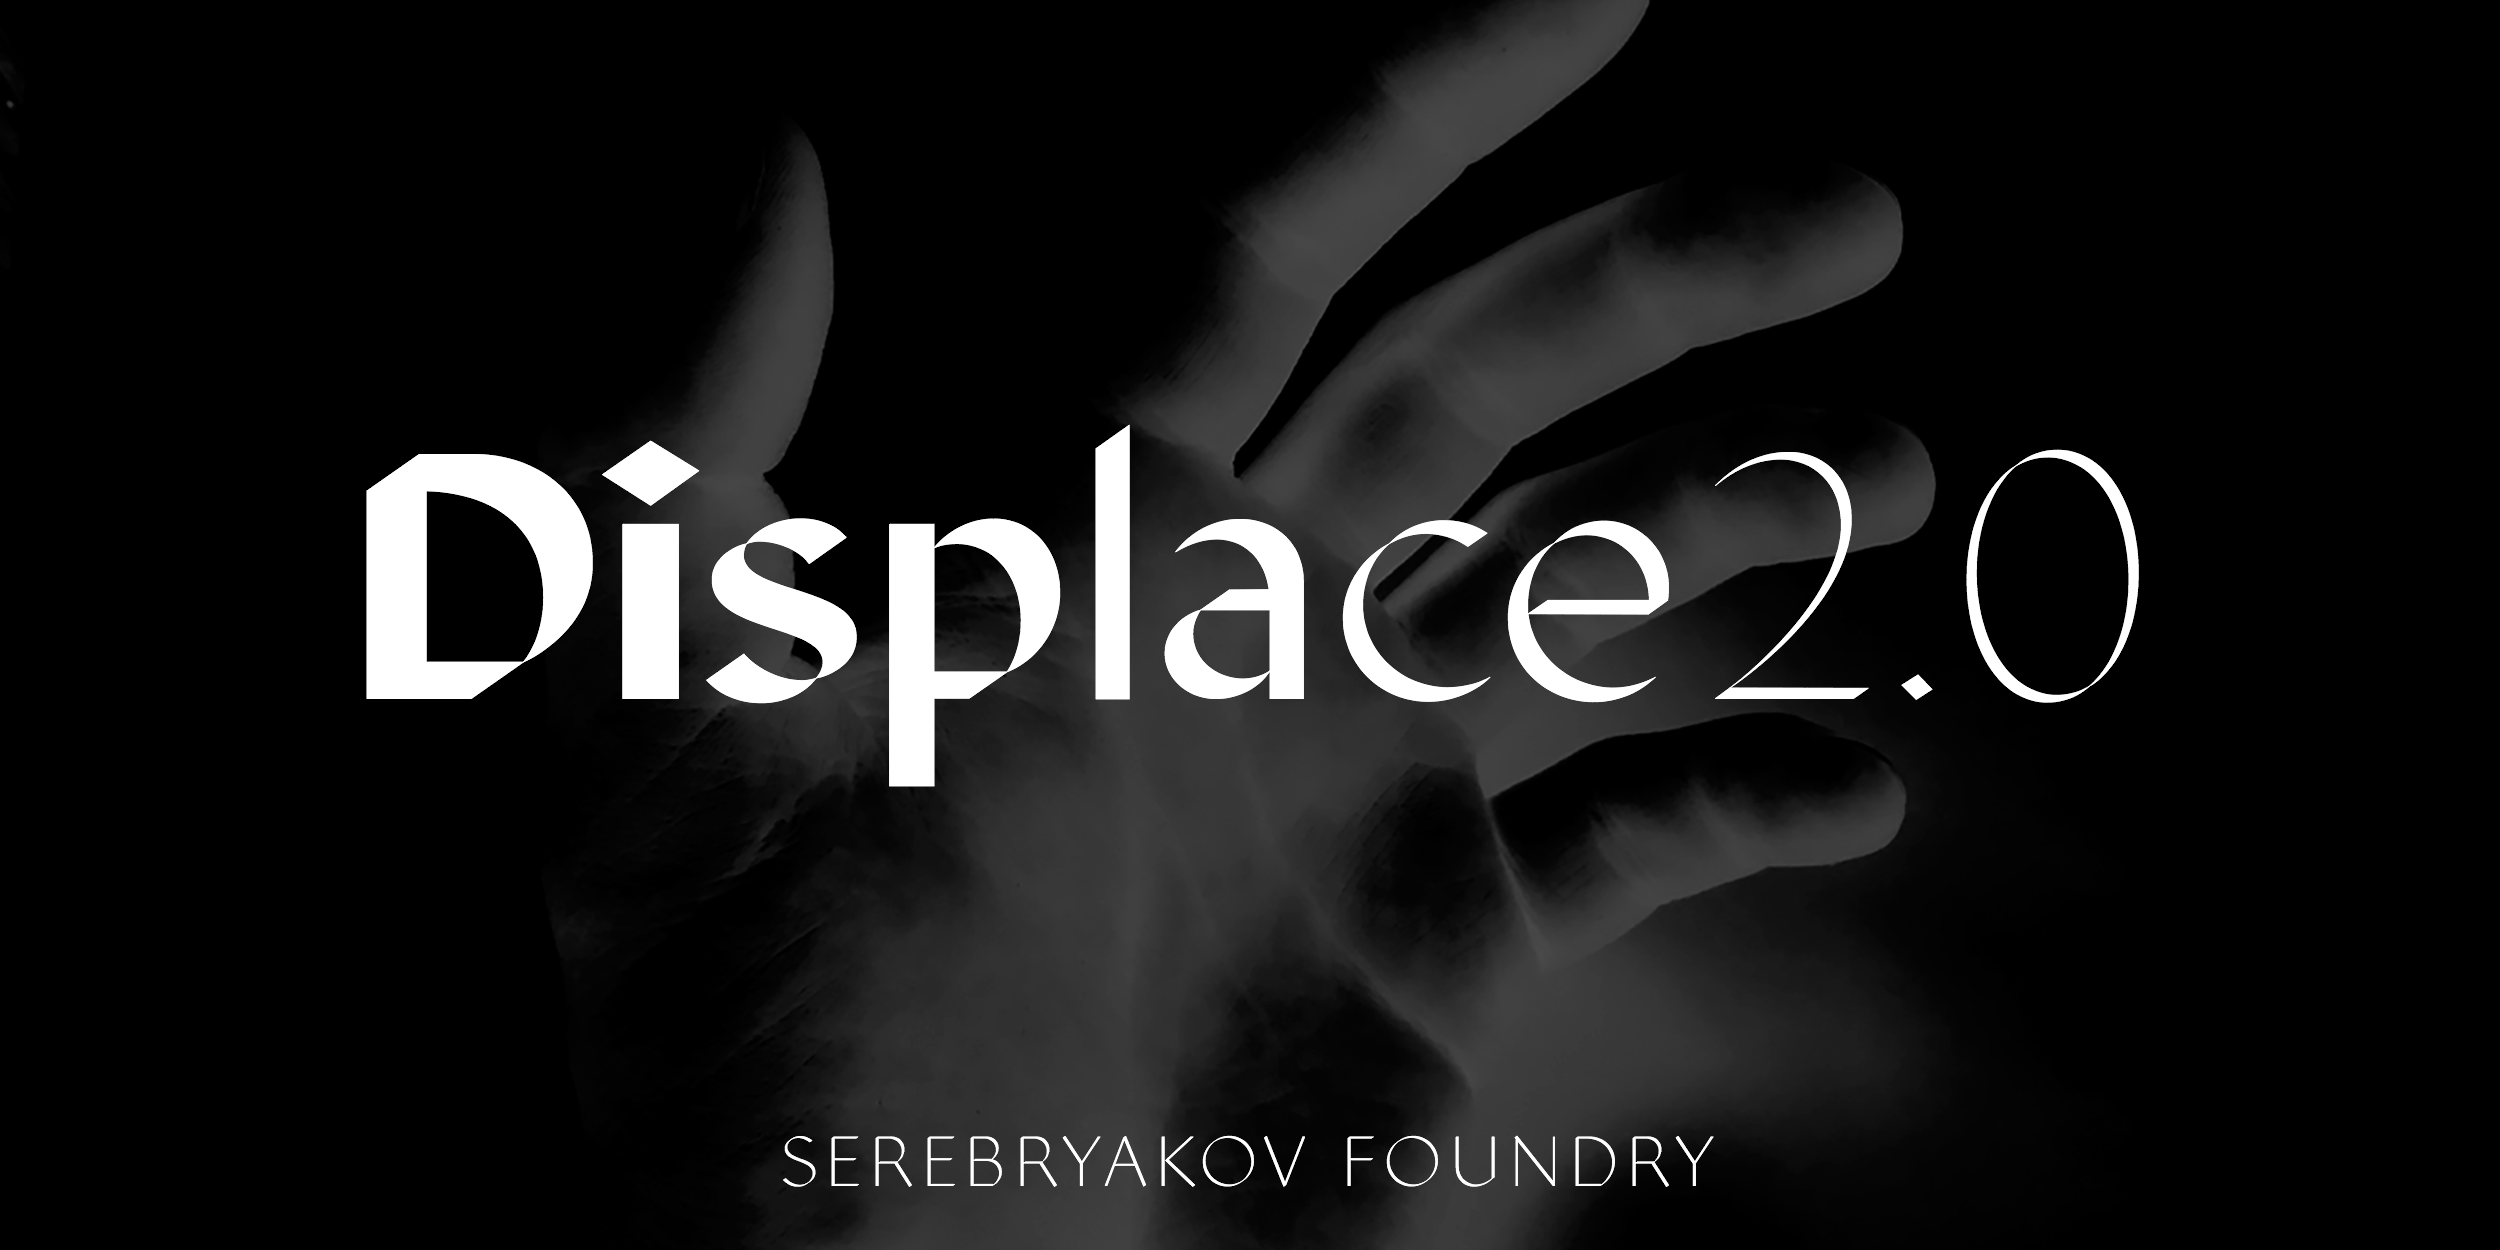 displace2.0_full_01